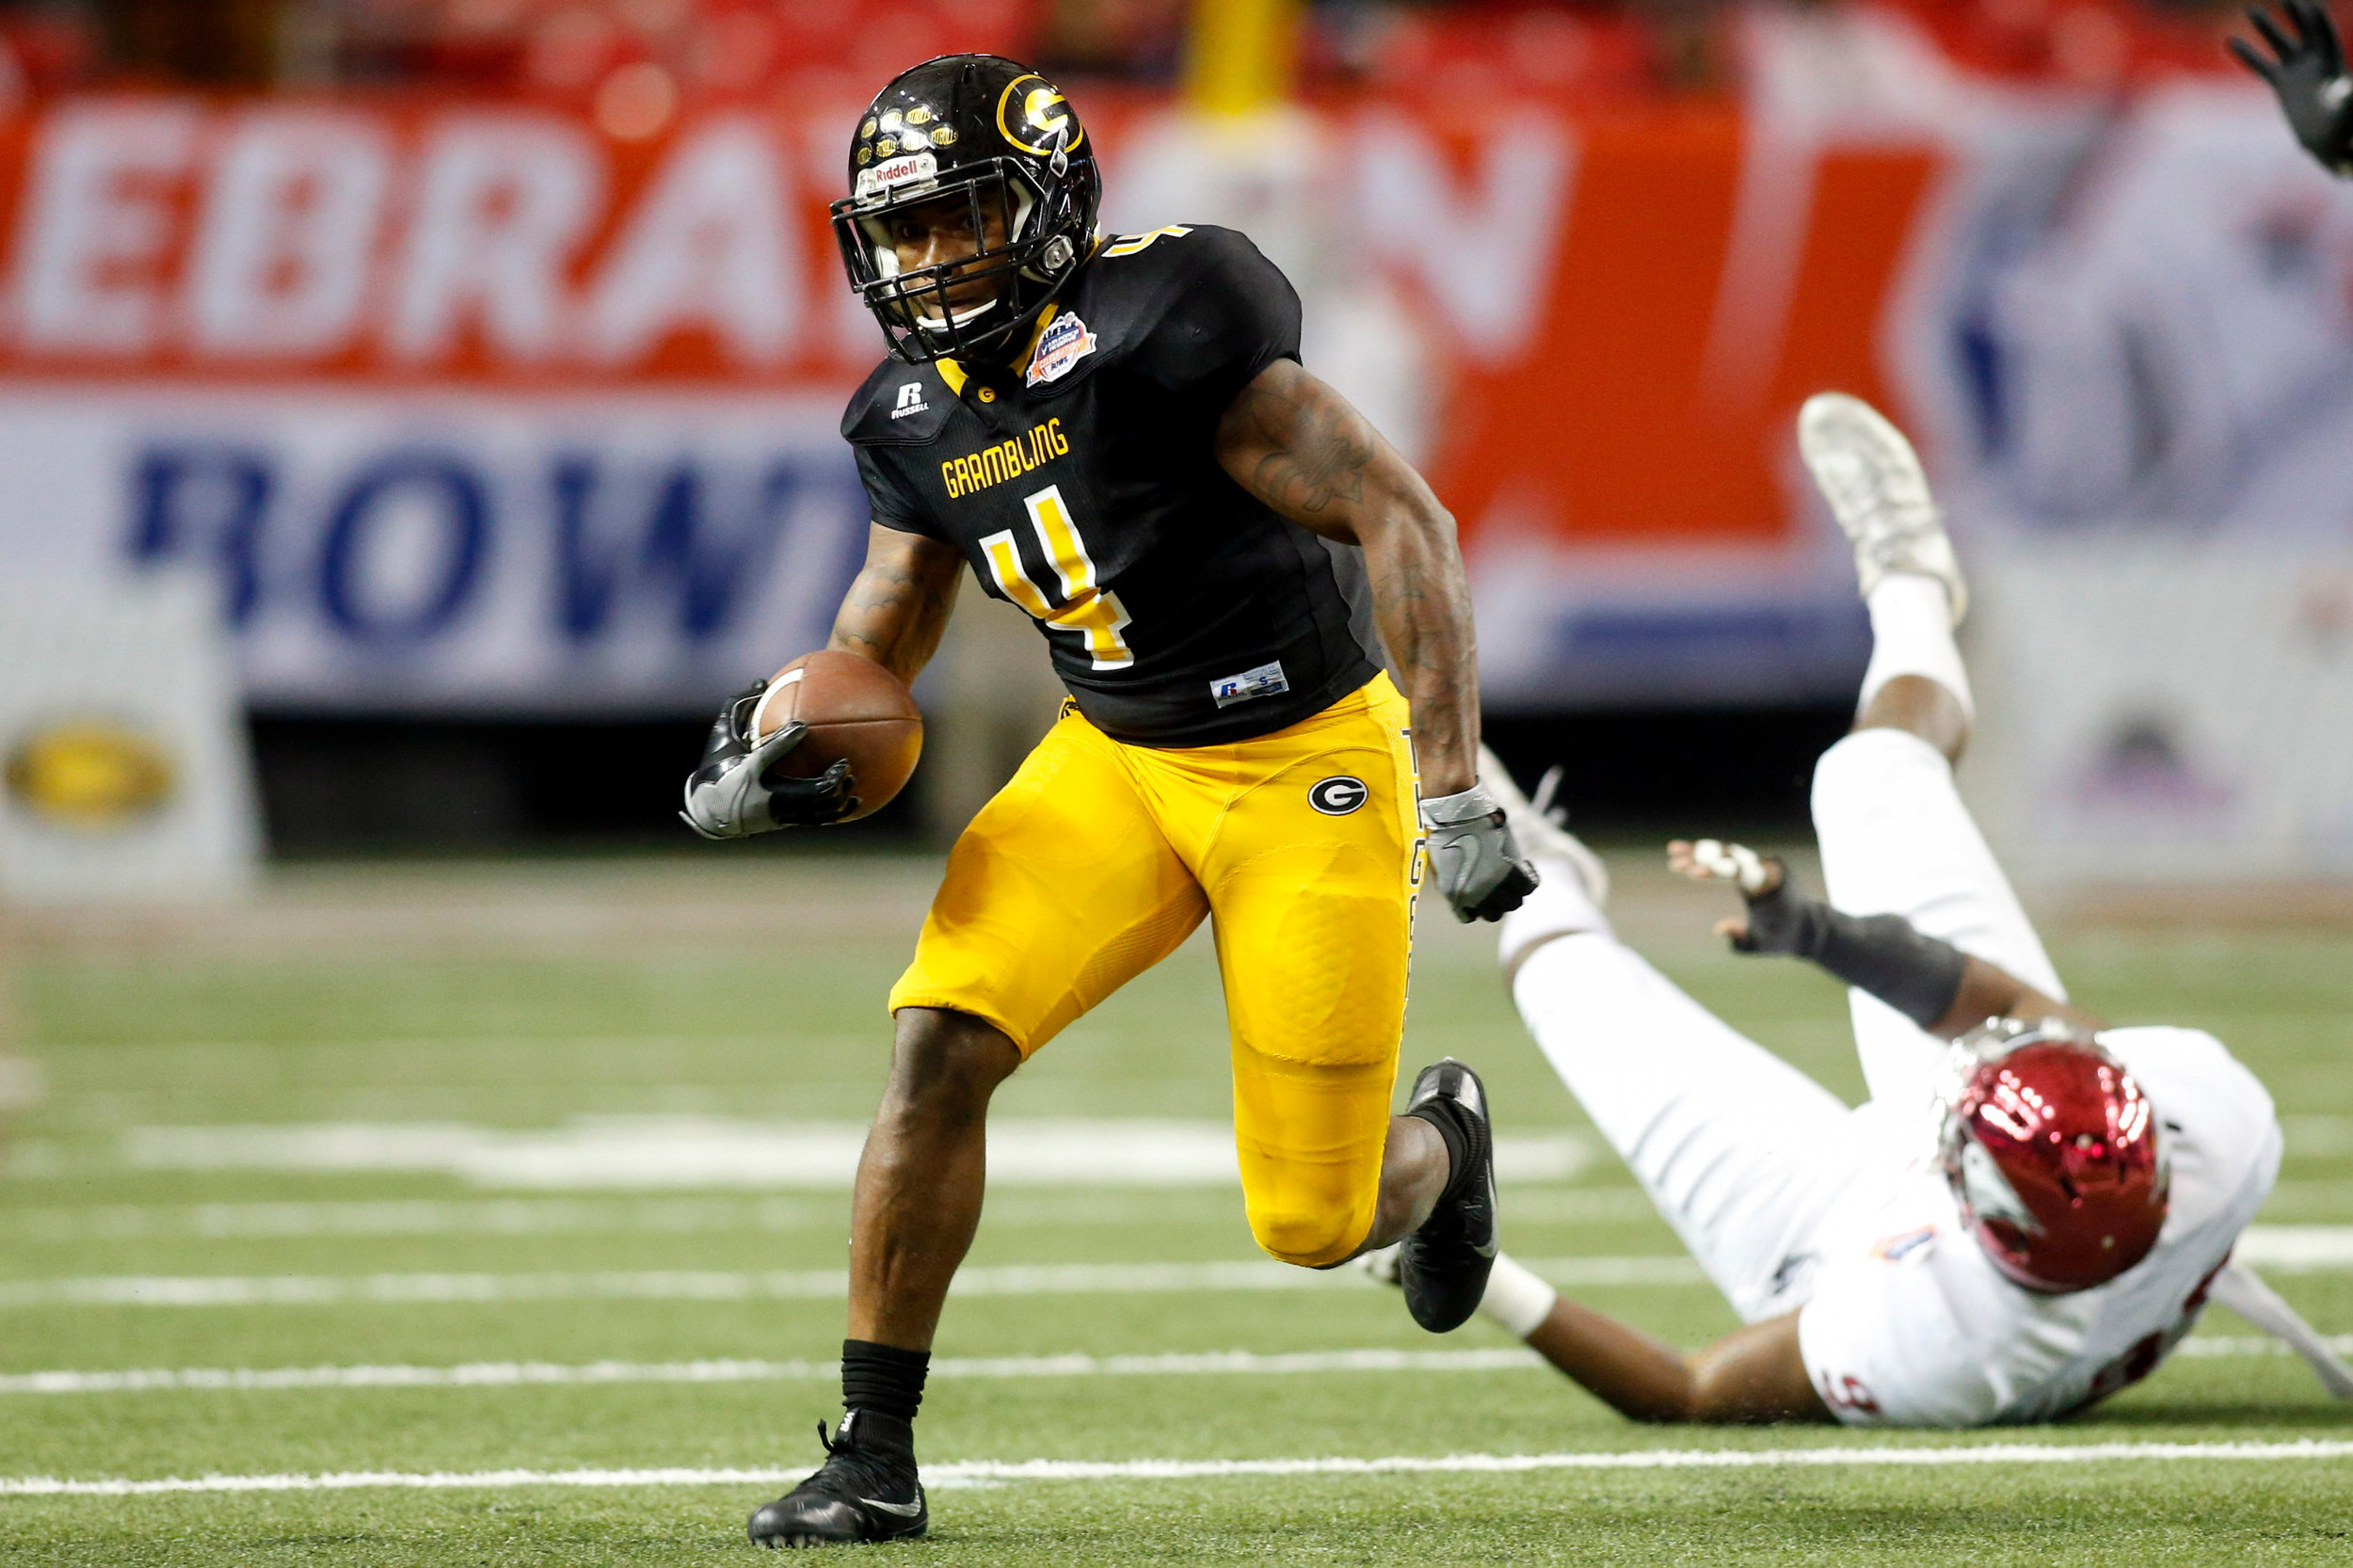 Atlanta, GA, USA; Grambling State Tigers running back Martez Carter (4) runs the ball against the North Carolina Central Eagles in the second quarter at the Georgia Dome.